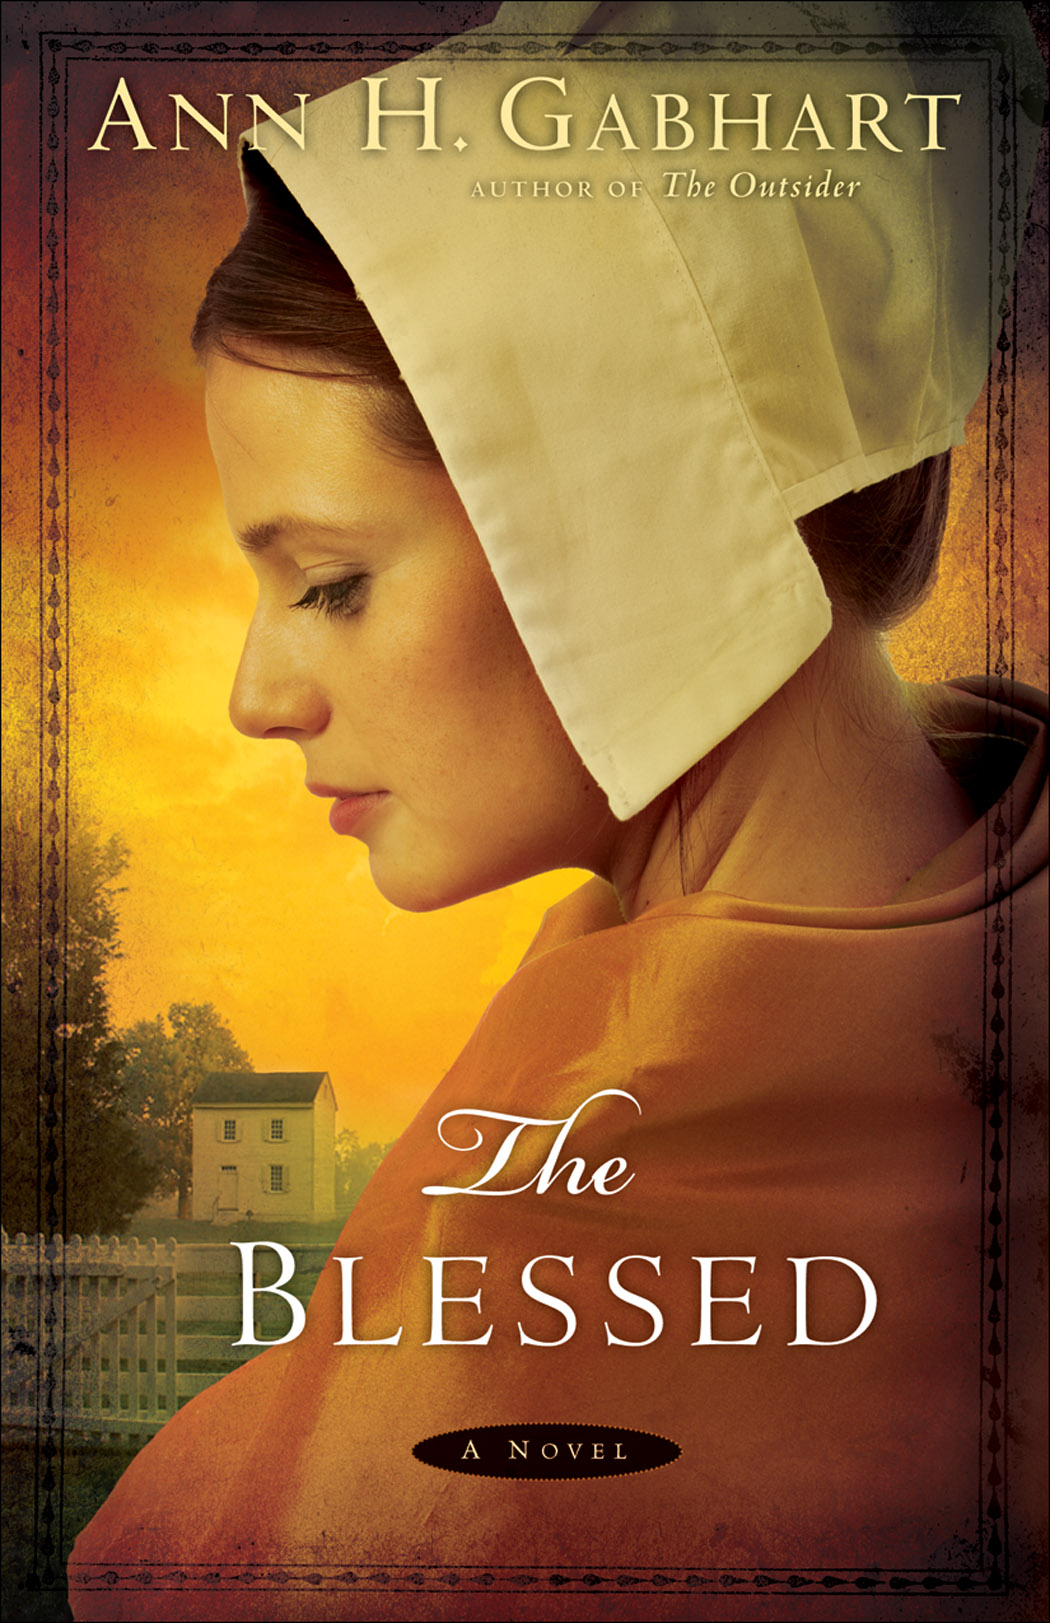 The blessed : a novel